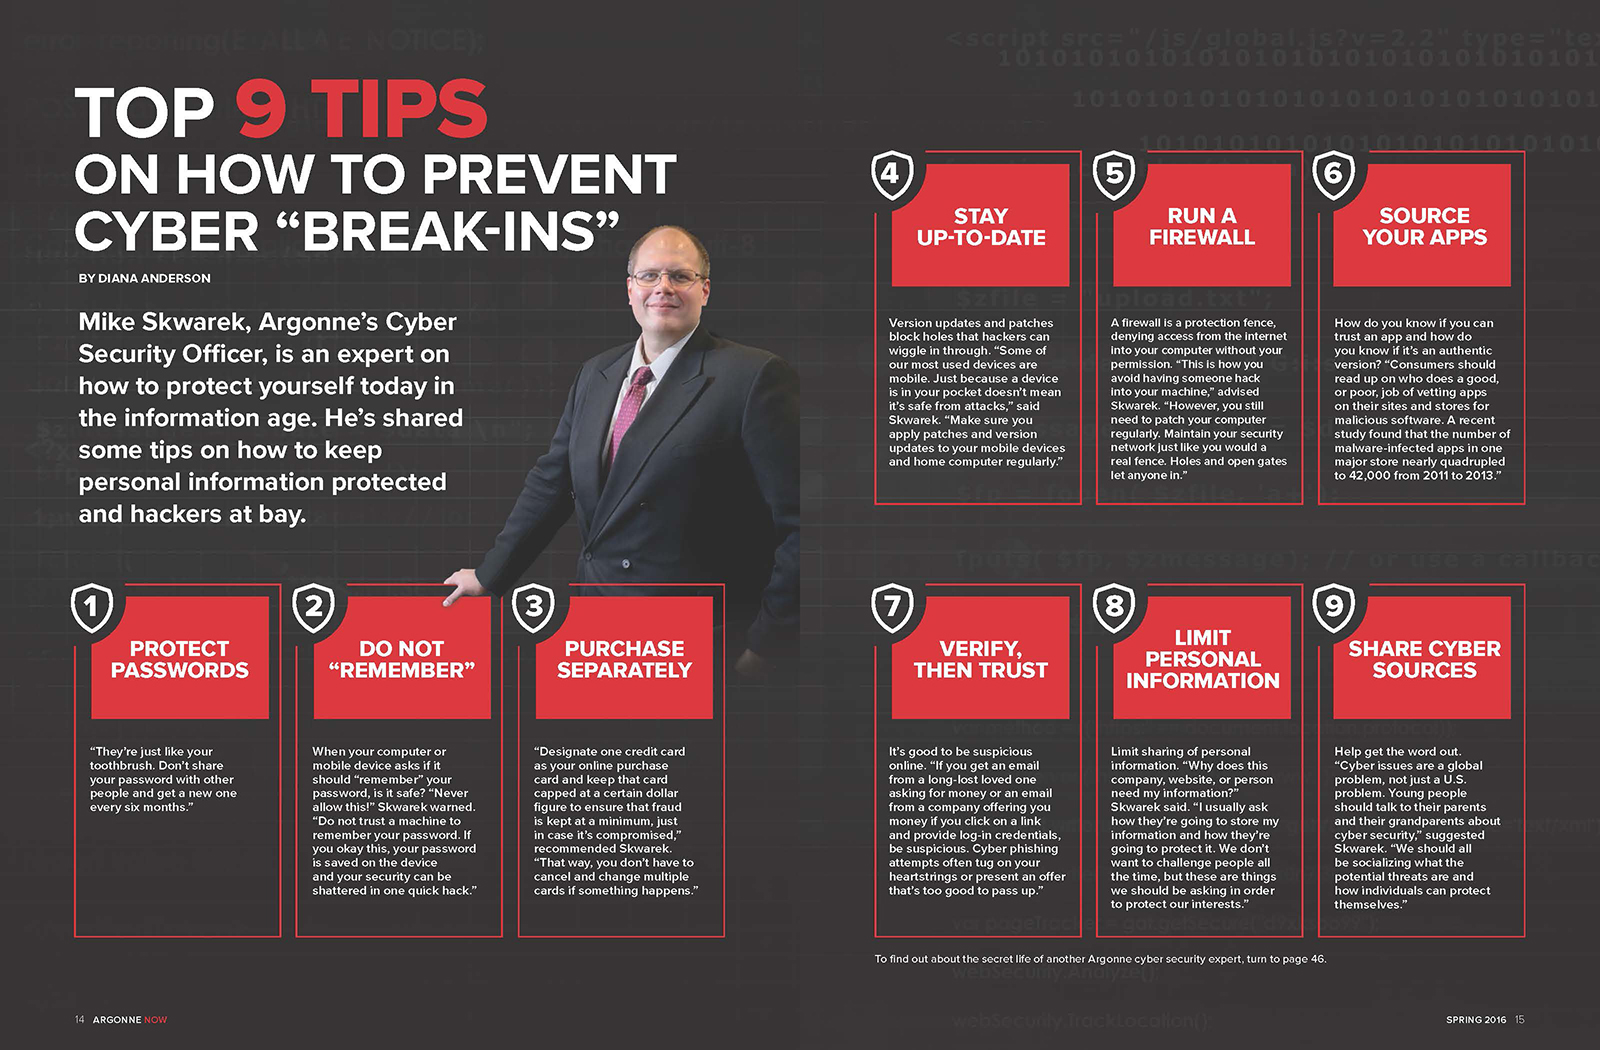 Cyber security expert Mike Skwarek shares tips on security in the digital age. Click image to view larger or download for educational purposes.